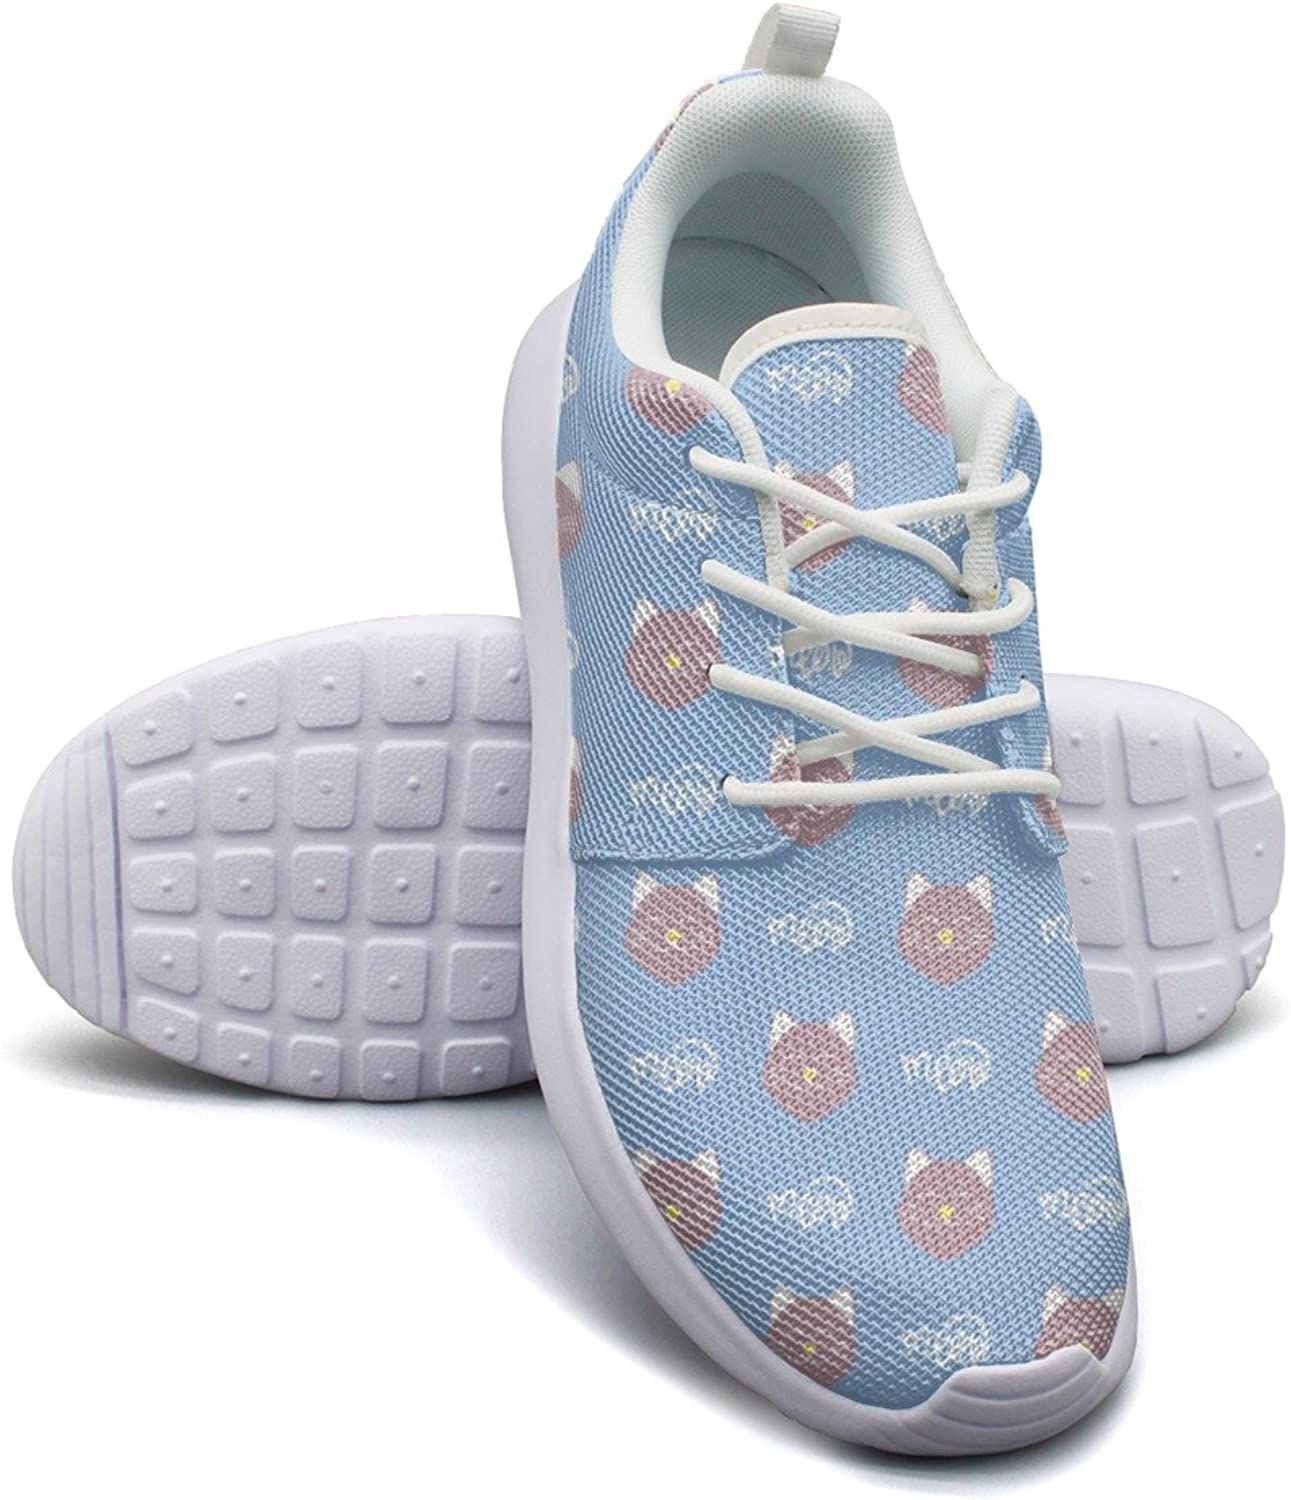 Cute Cat Face Meow bluee Background Women's Lightweight Mesh Sneakers Exclusive Gym shoes